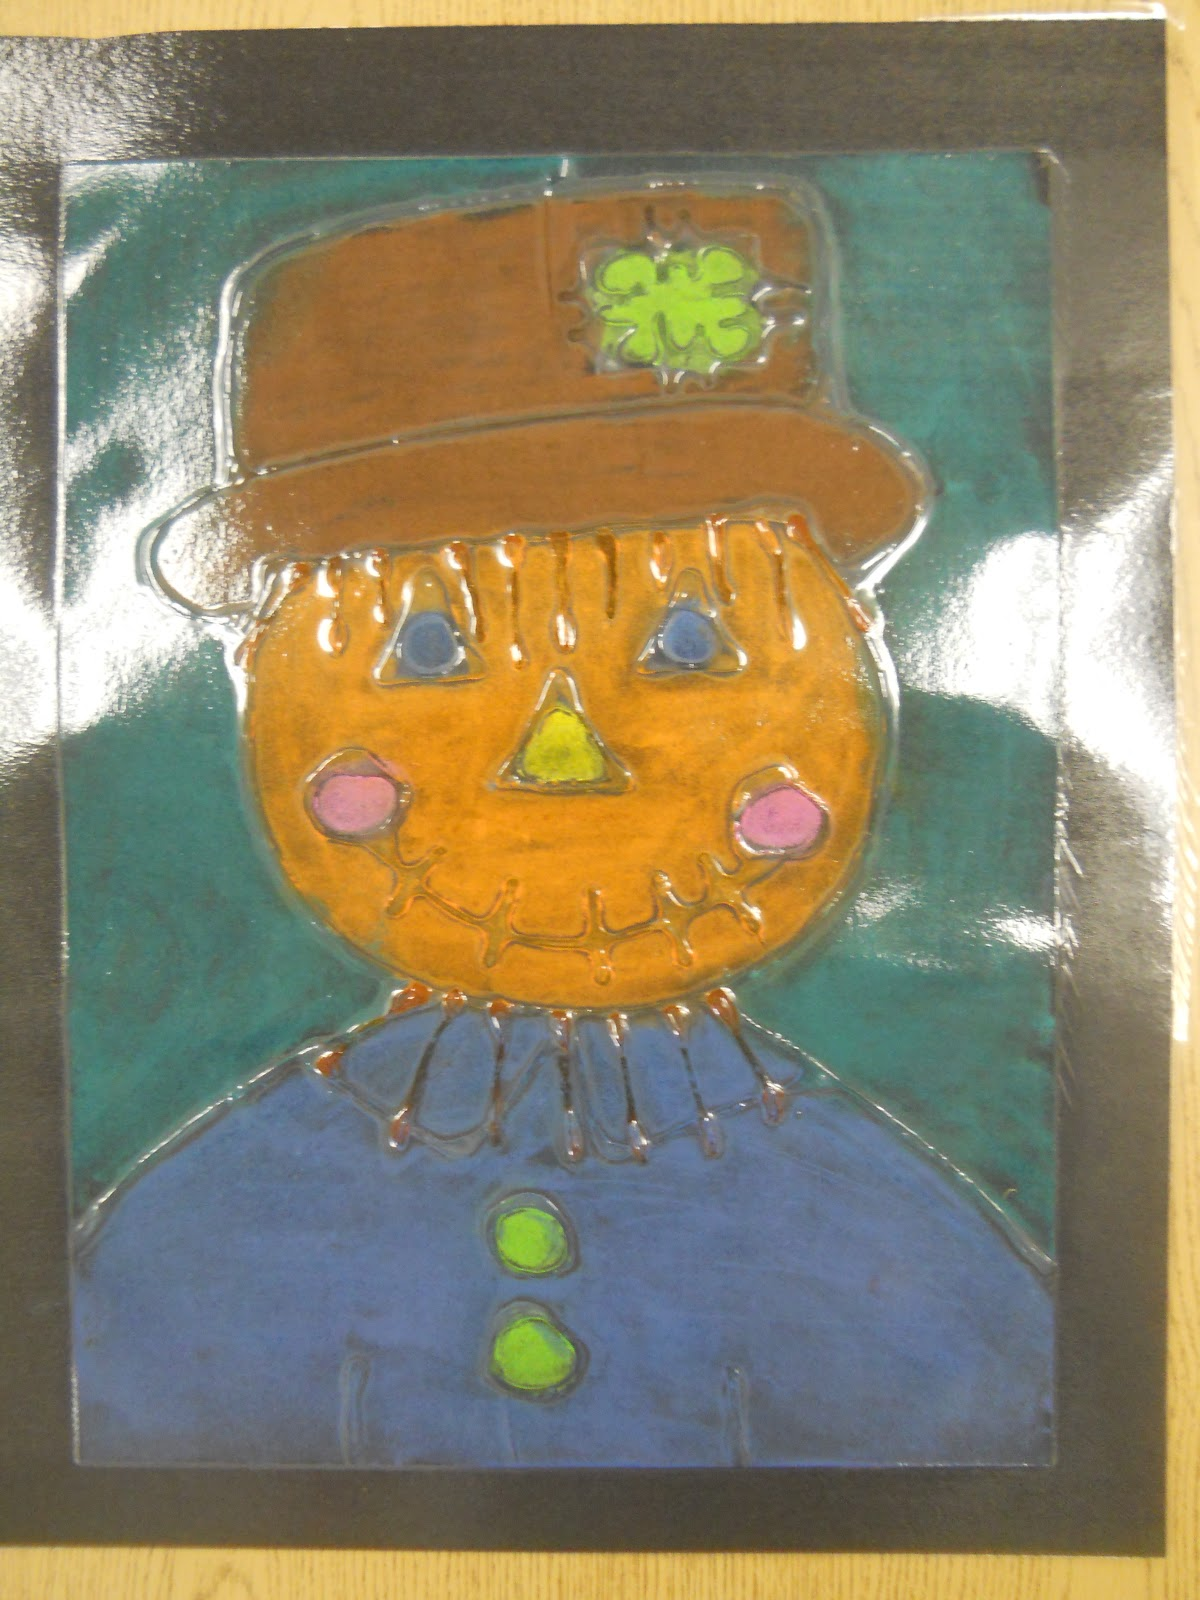 scarecrow project Christian fall craft ideas, christian fall crafts scarecrow sign craft makes a great harvest activity for sunday school fall craft printed with a bible verse which read: harvesting for him the harvest is plentiful, but the workers are few.